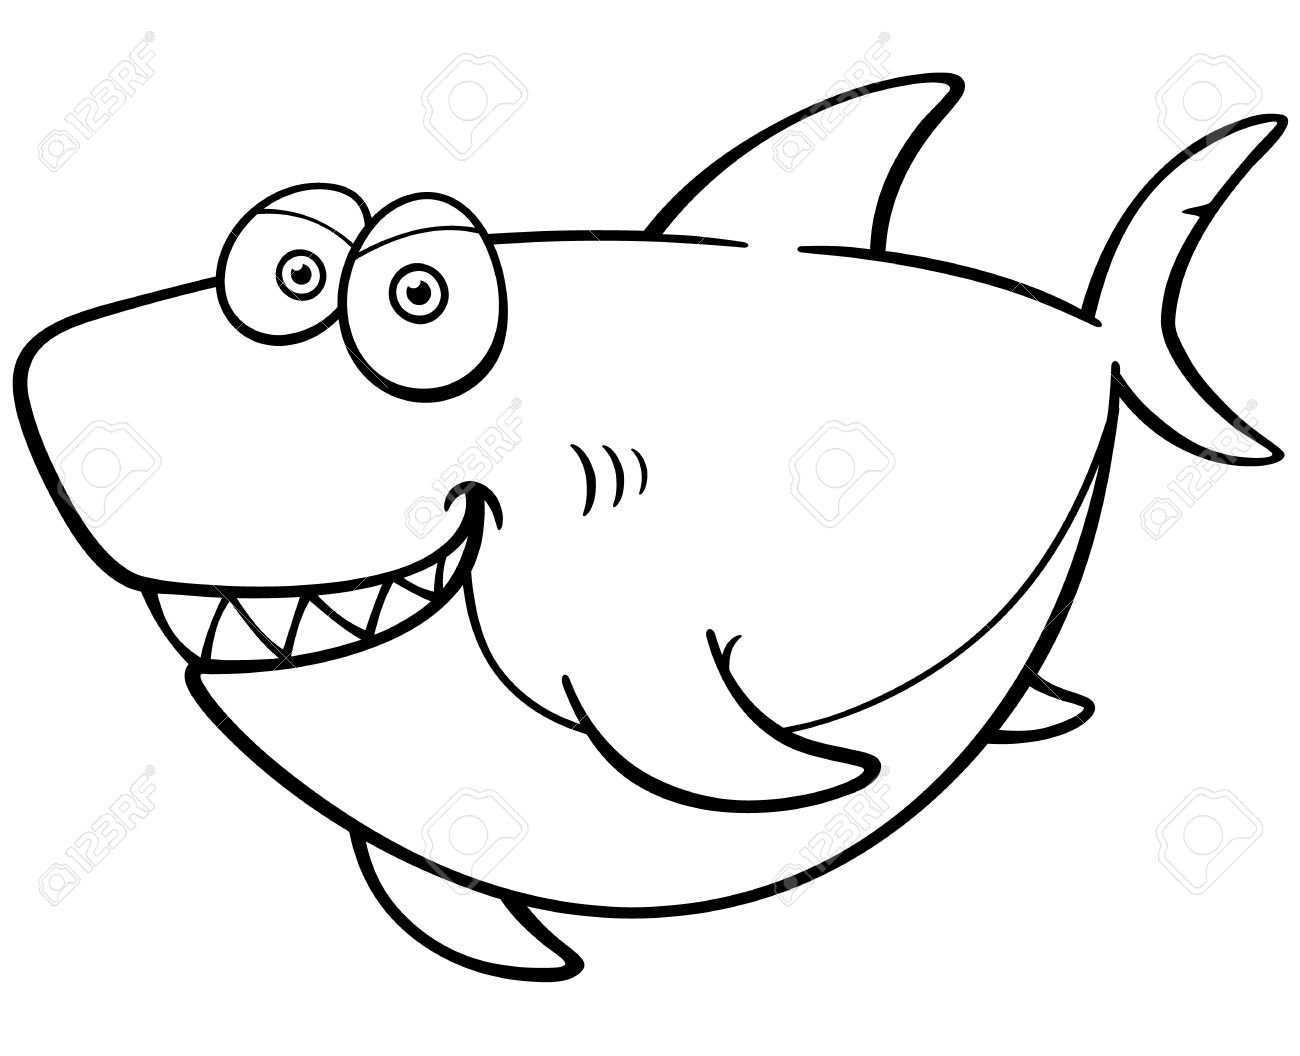 Shark Simple Drawing at GetDrawings Free download